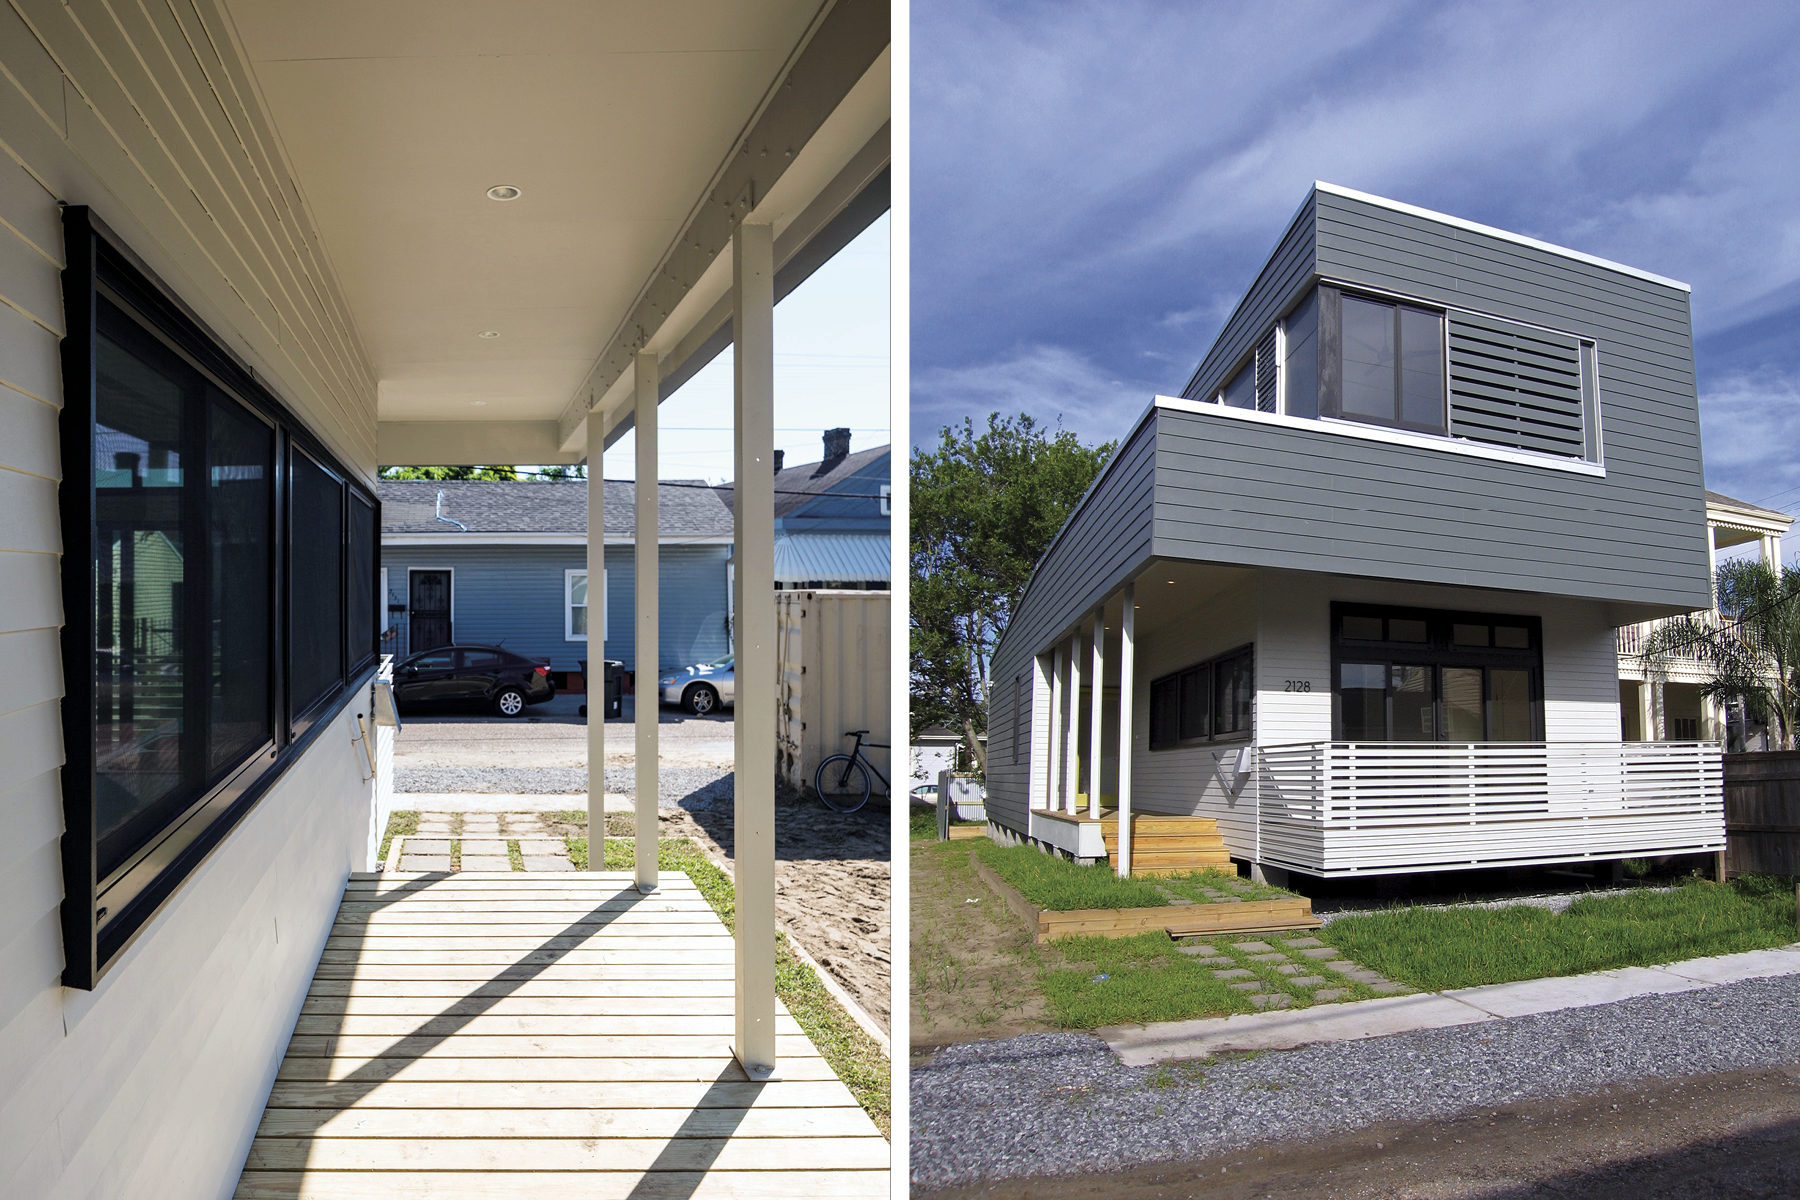 Split view of a modern two-story home with first photo as a perspective looking out from a long side porch to the front yard, and the other photo a front view of the home